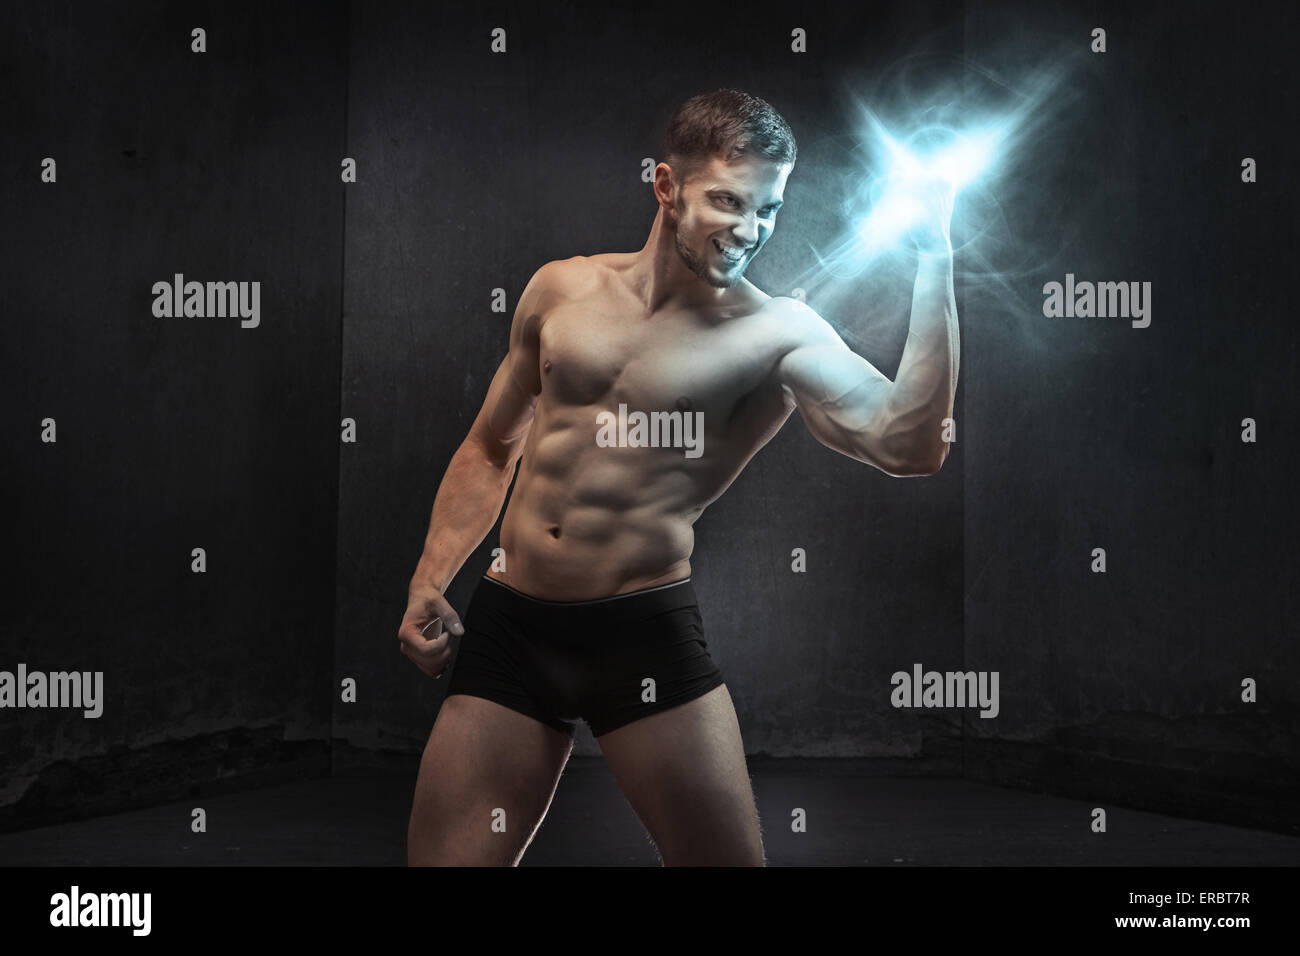 Muscular man squeezing the power - Stock Image